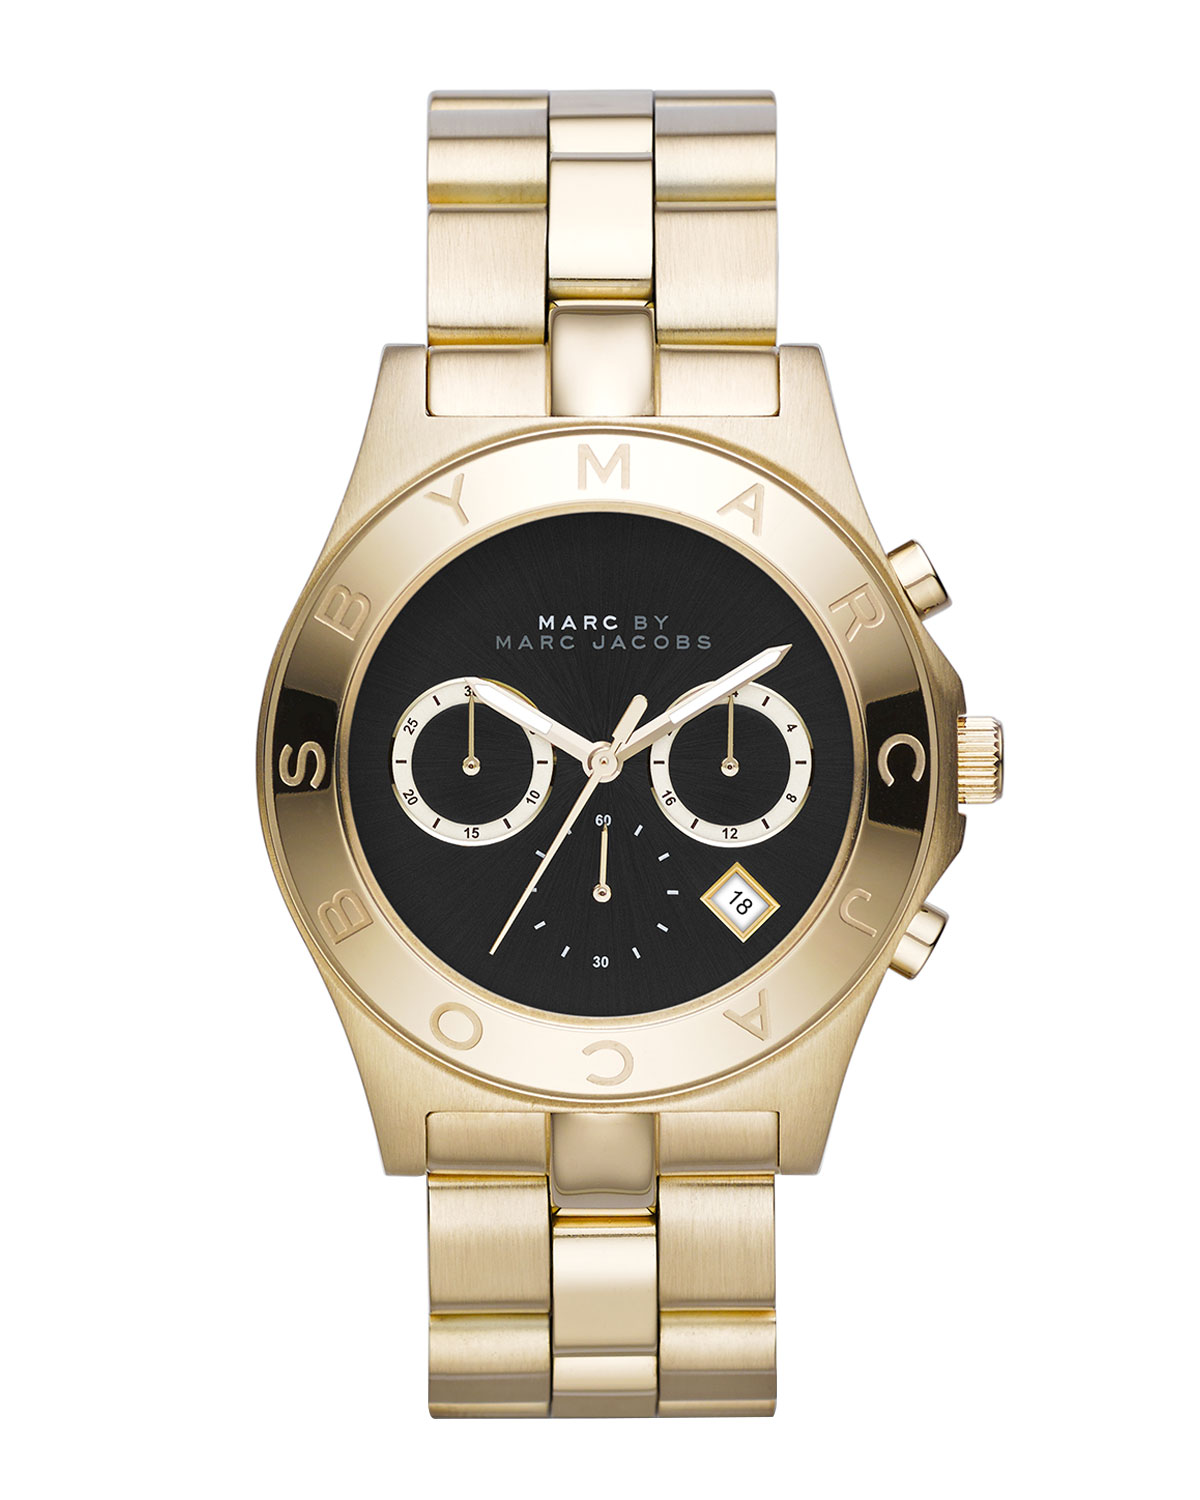 Blade Golden Chronograph Watch with Black Dial